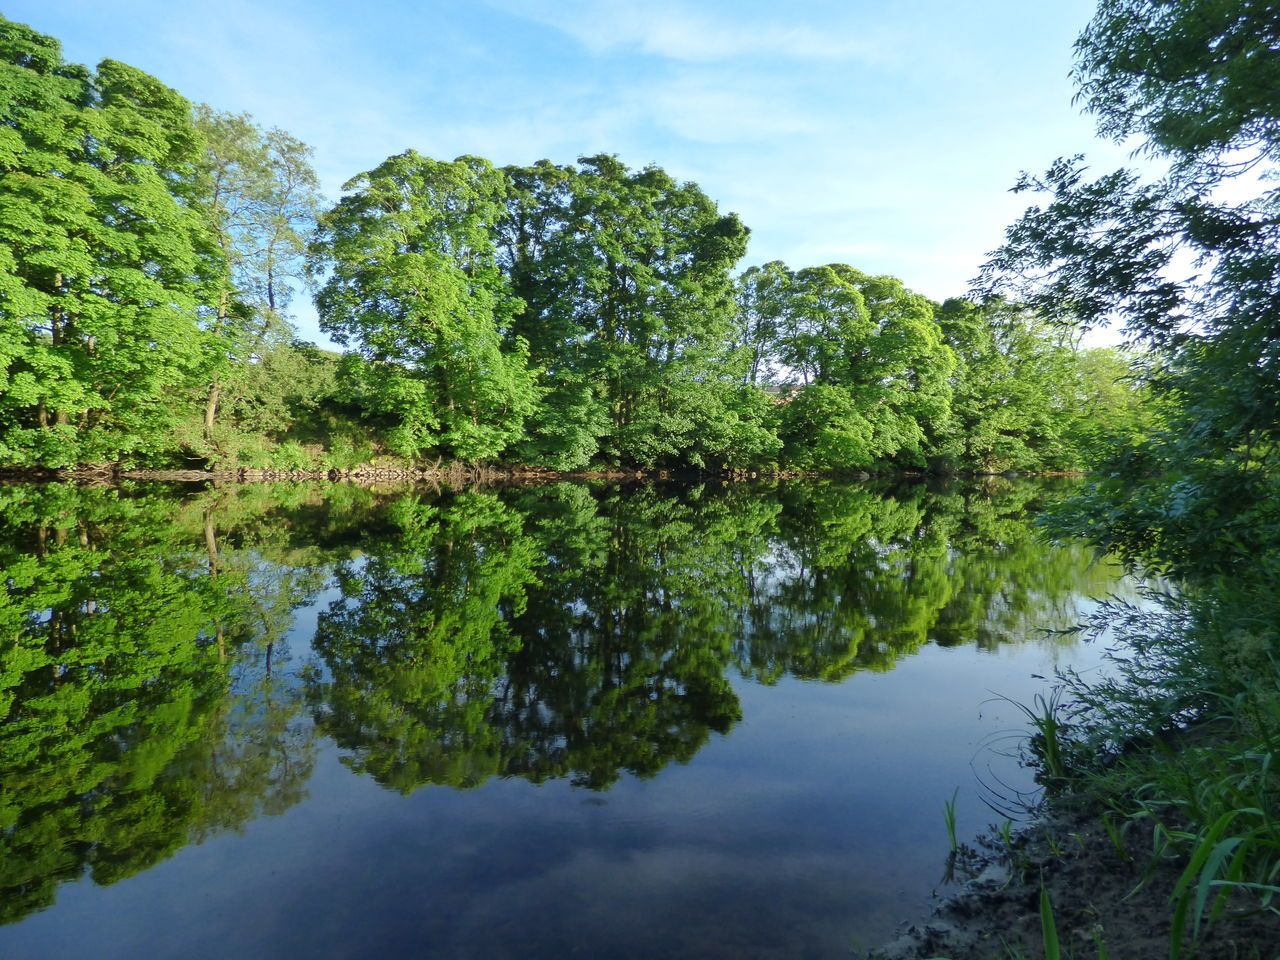 reflection, water, nature, lake, sky, tranquil scene, tranquility, beauty in nature, outdoors, tree, day, waterfront, scenics, no people, standing water, green color, growth, cloud - sky